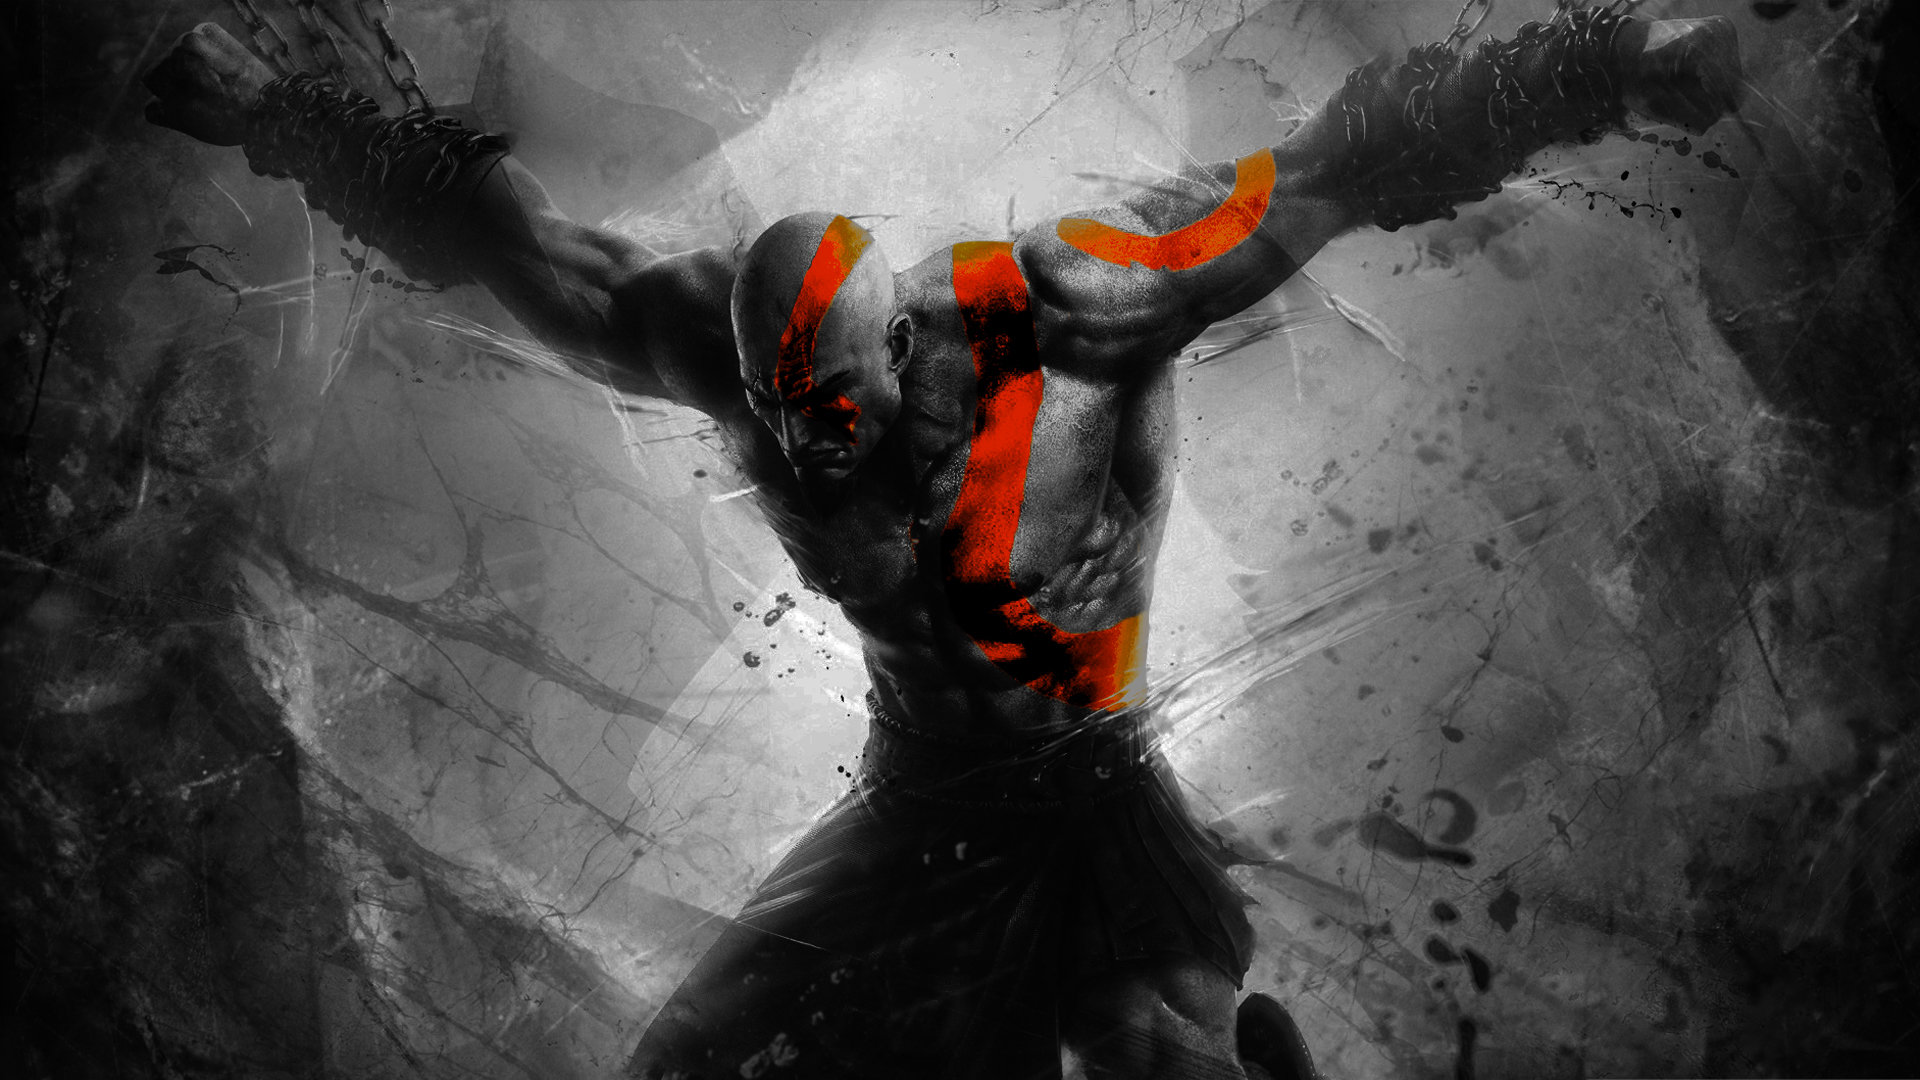 1920x1080 Hd Wallpapers For Your Desktop: God Of War: Ascension Wallpapers HD For Desktop Backgrounds